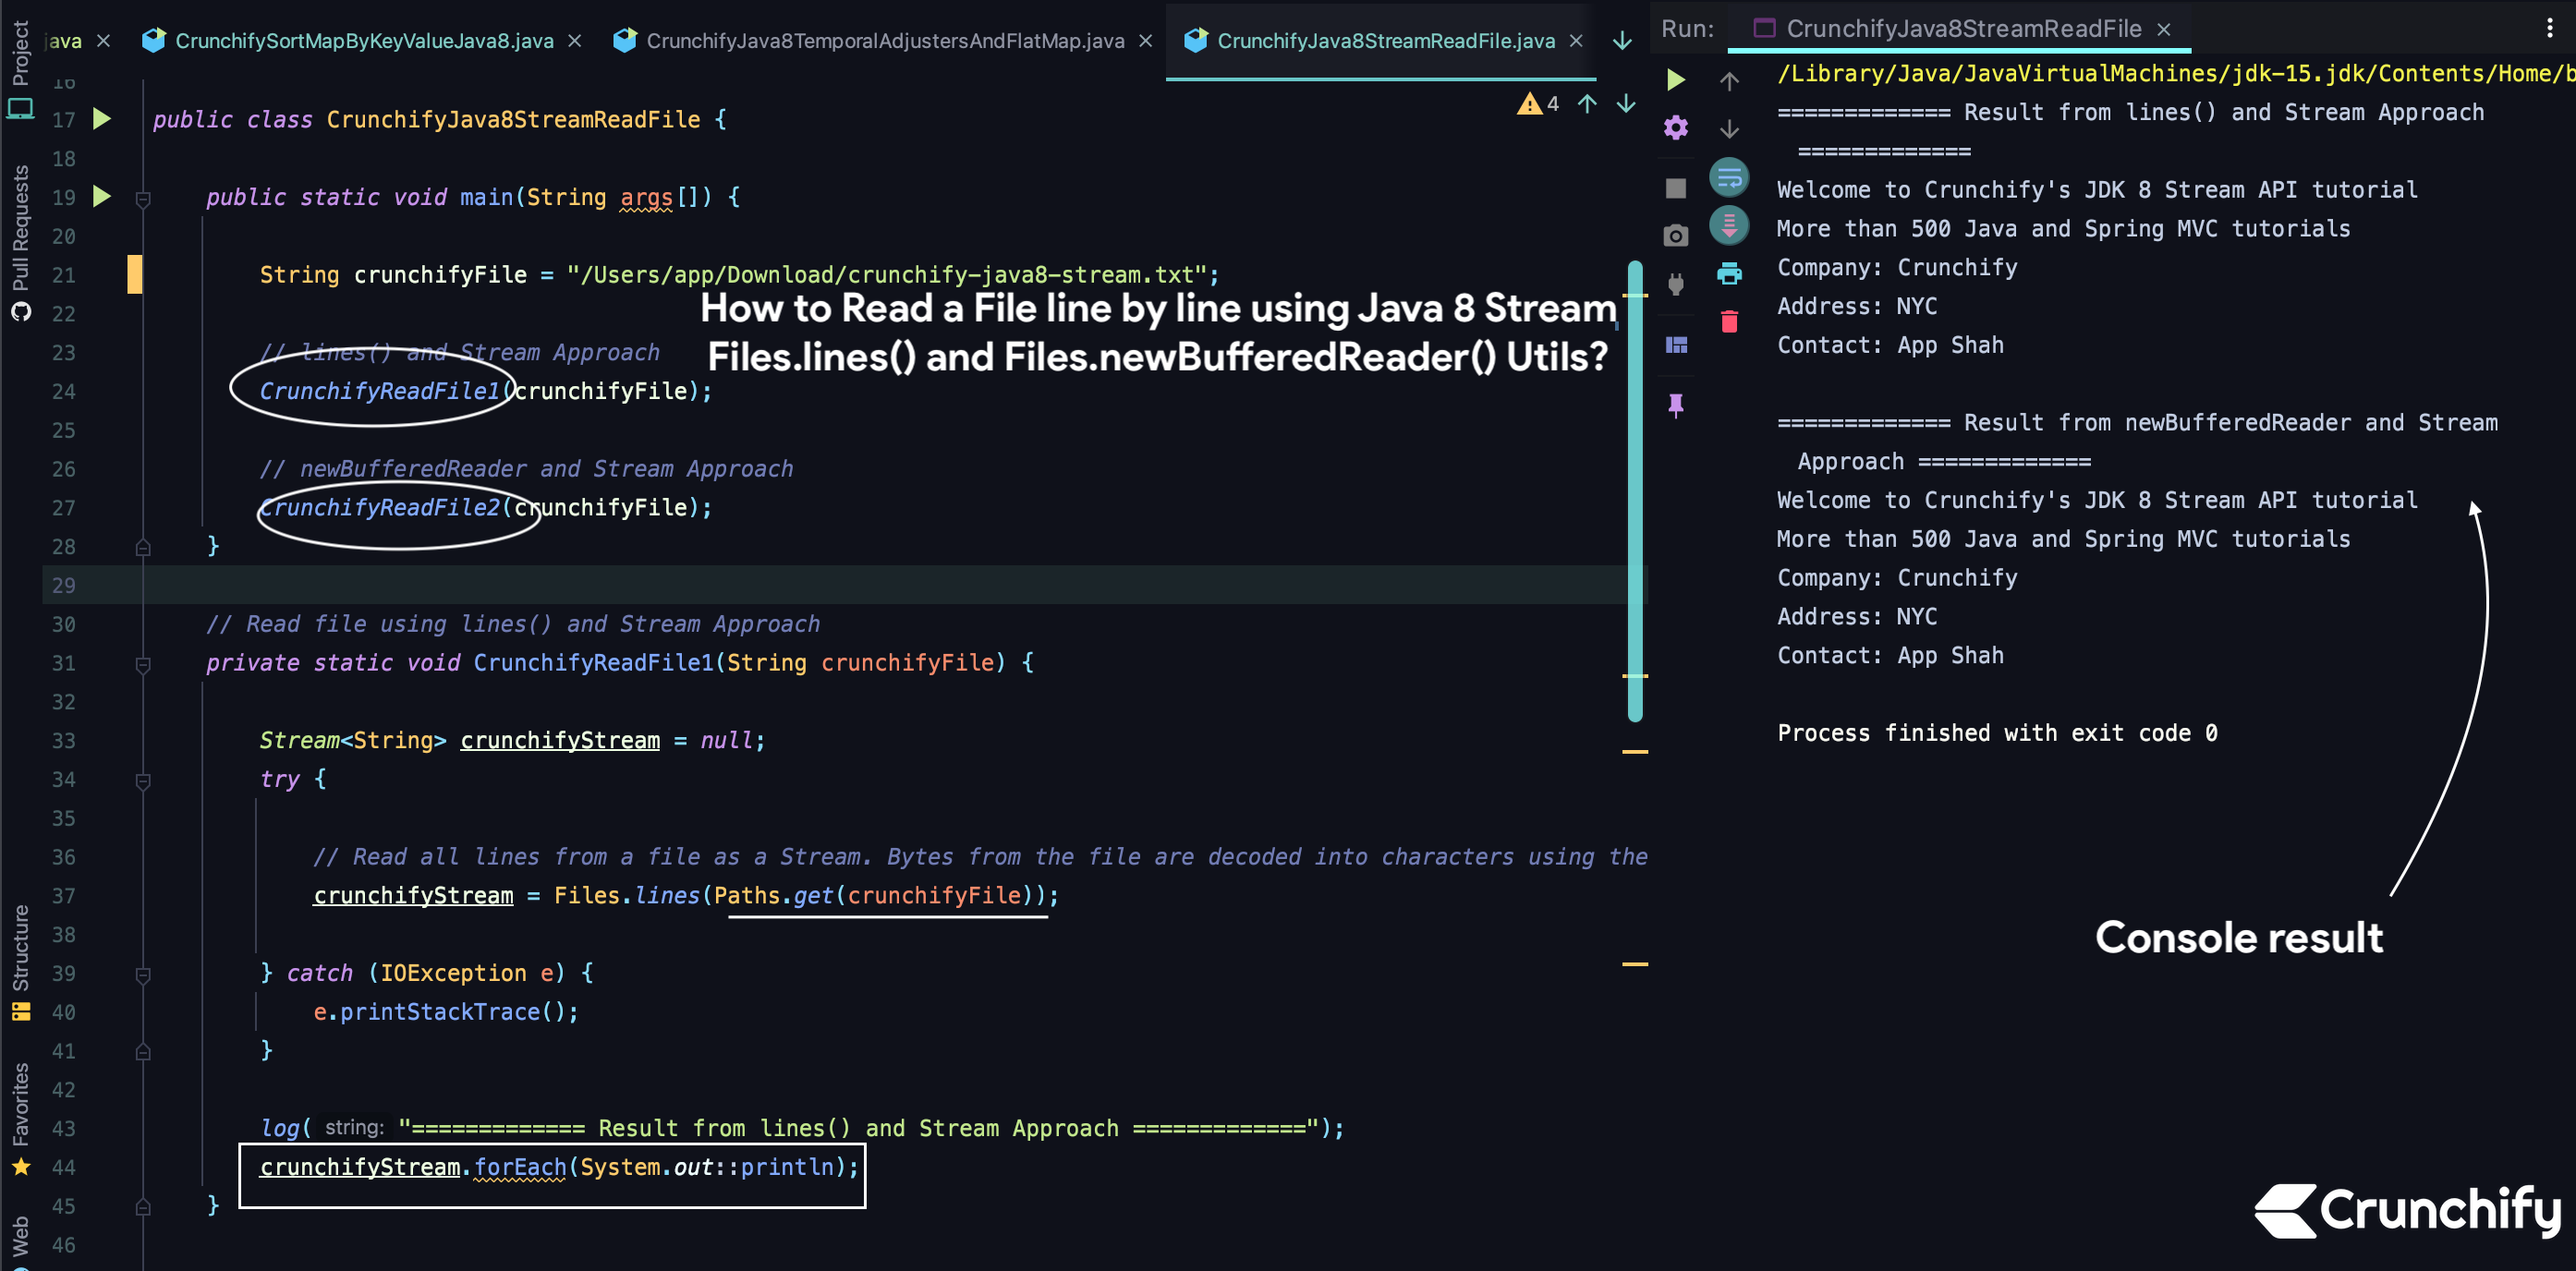 How to Read a File line by line using Java 8 Stream - Files.lines() and Files.newBufferedReader() Utils